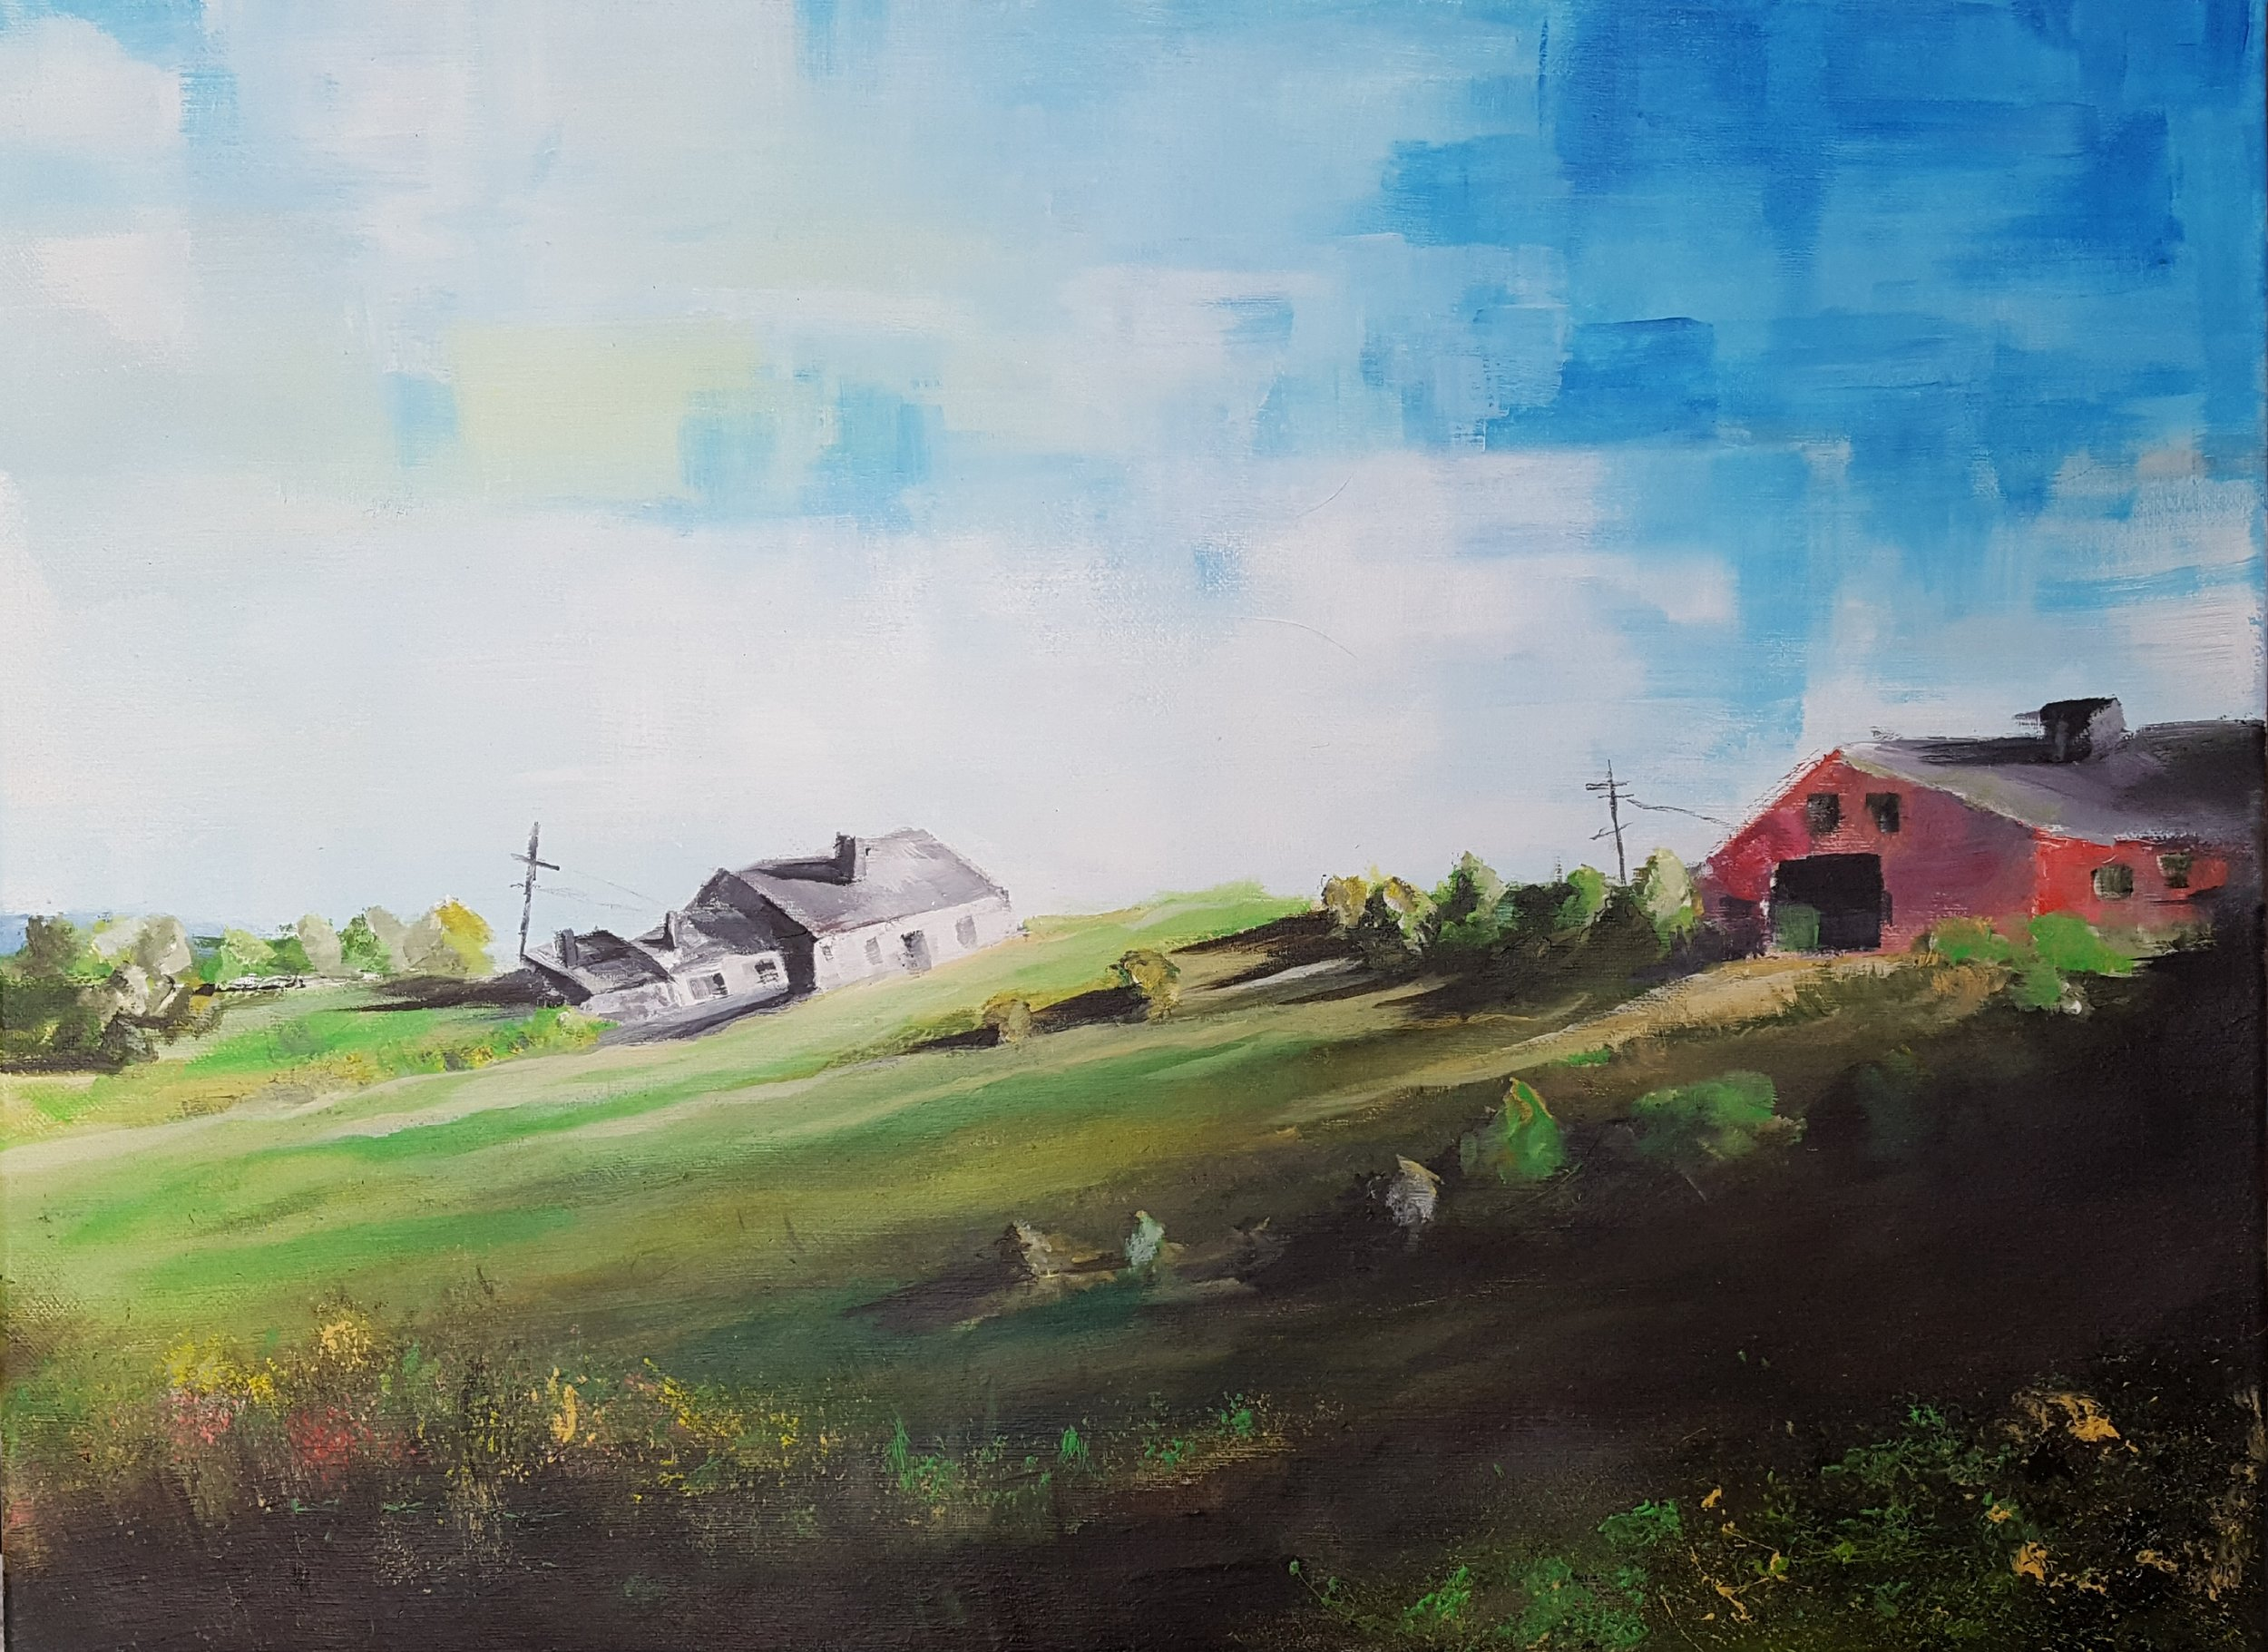 Witchtrot Farm, acrylic on canvas, 18 x 24, $800.